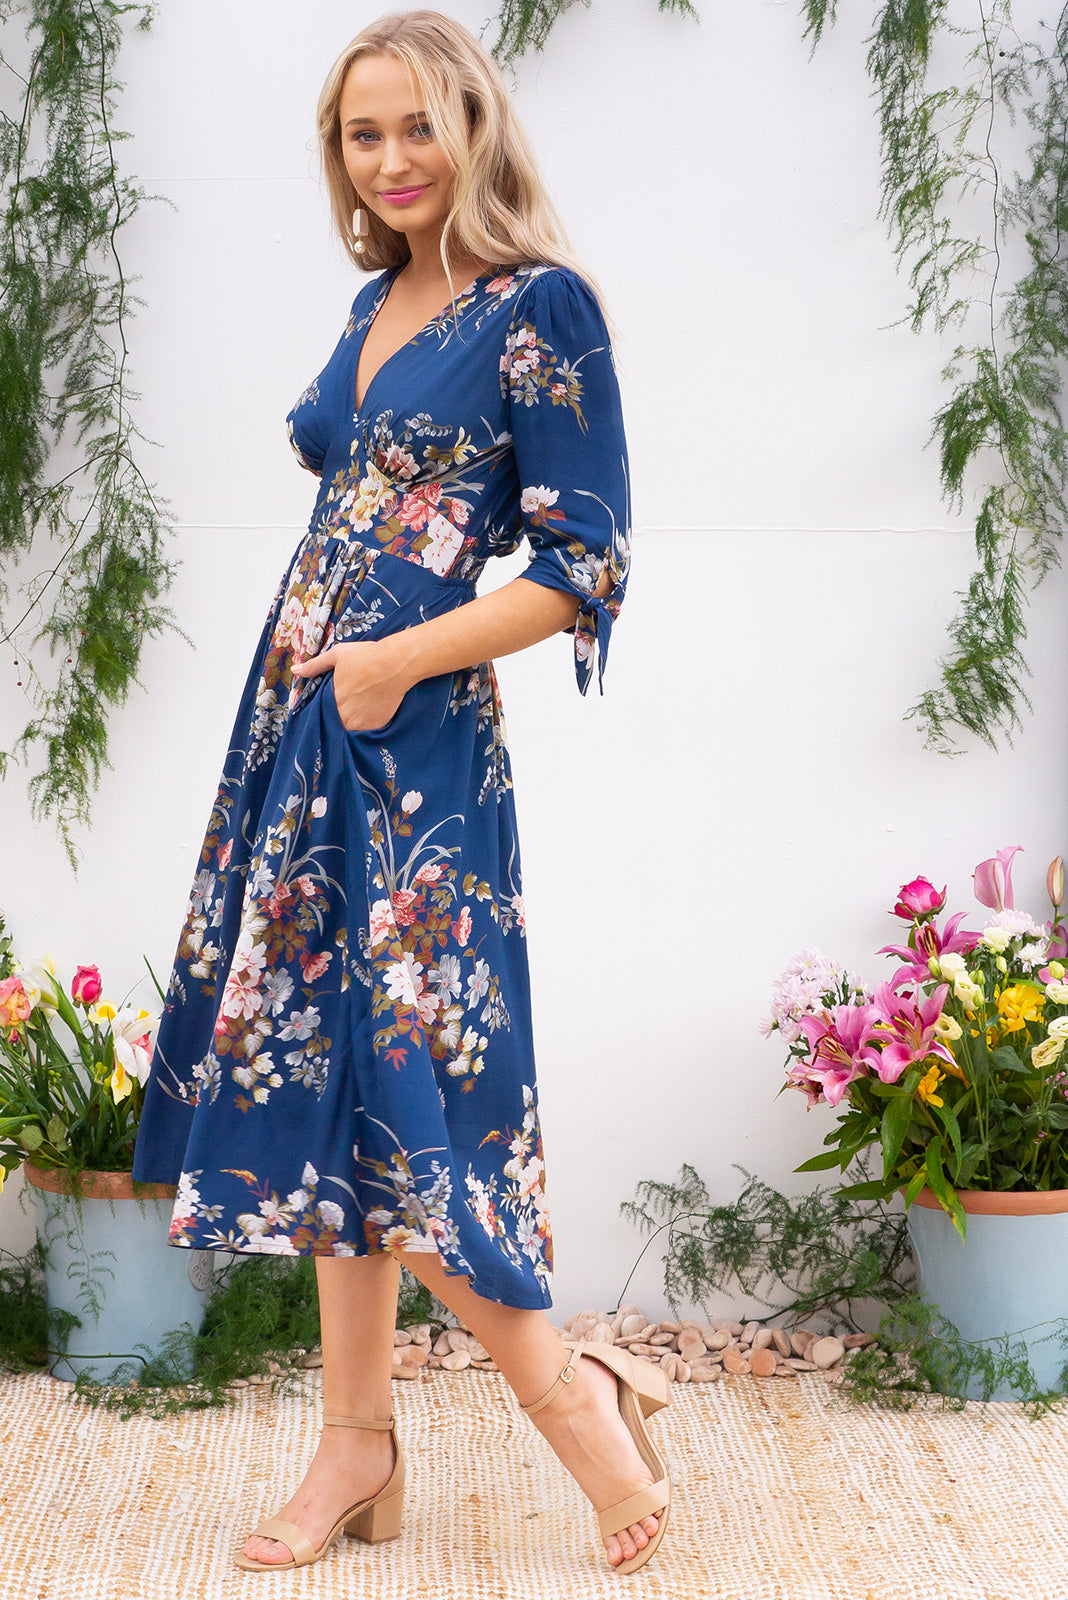 Henrietta Navy Bouquet Midi dress features a vintage inspired fitted basque waist and elasticated waist with a midi sleeve and deep v neck the fabric is a soft woven rayon in a soft romantic navy bouquet floral print